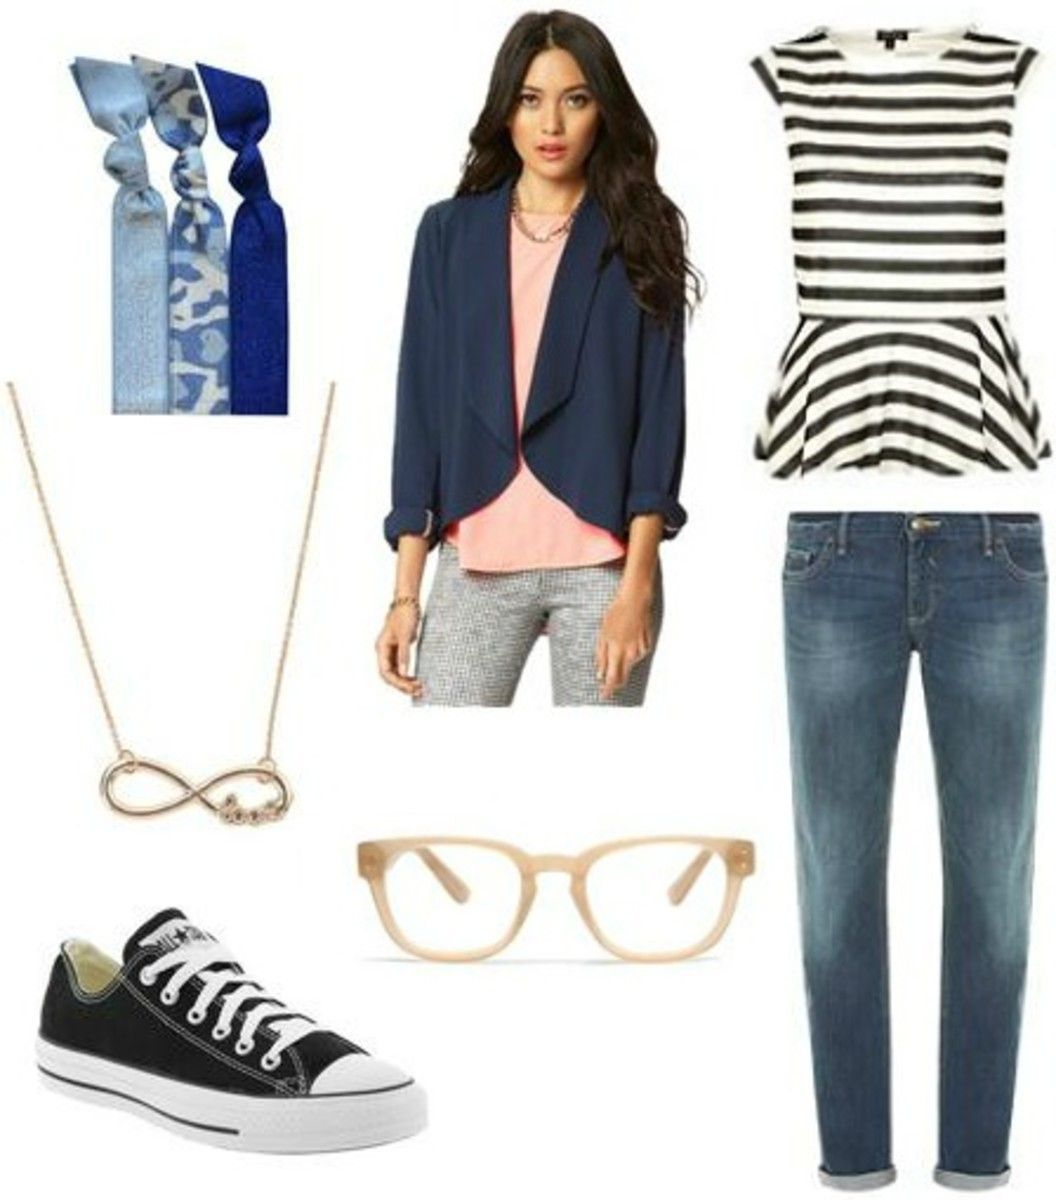 Geek Chic: What to Wear to Lab - College Fashion